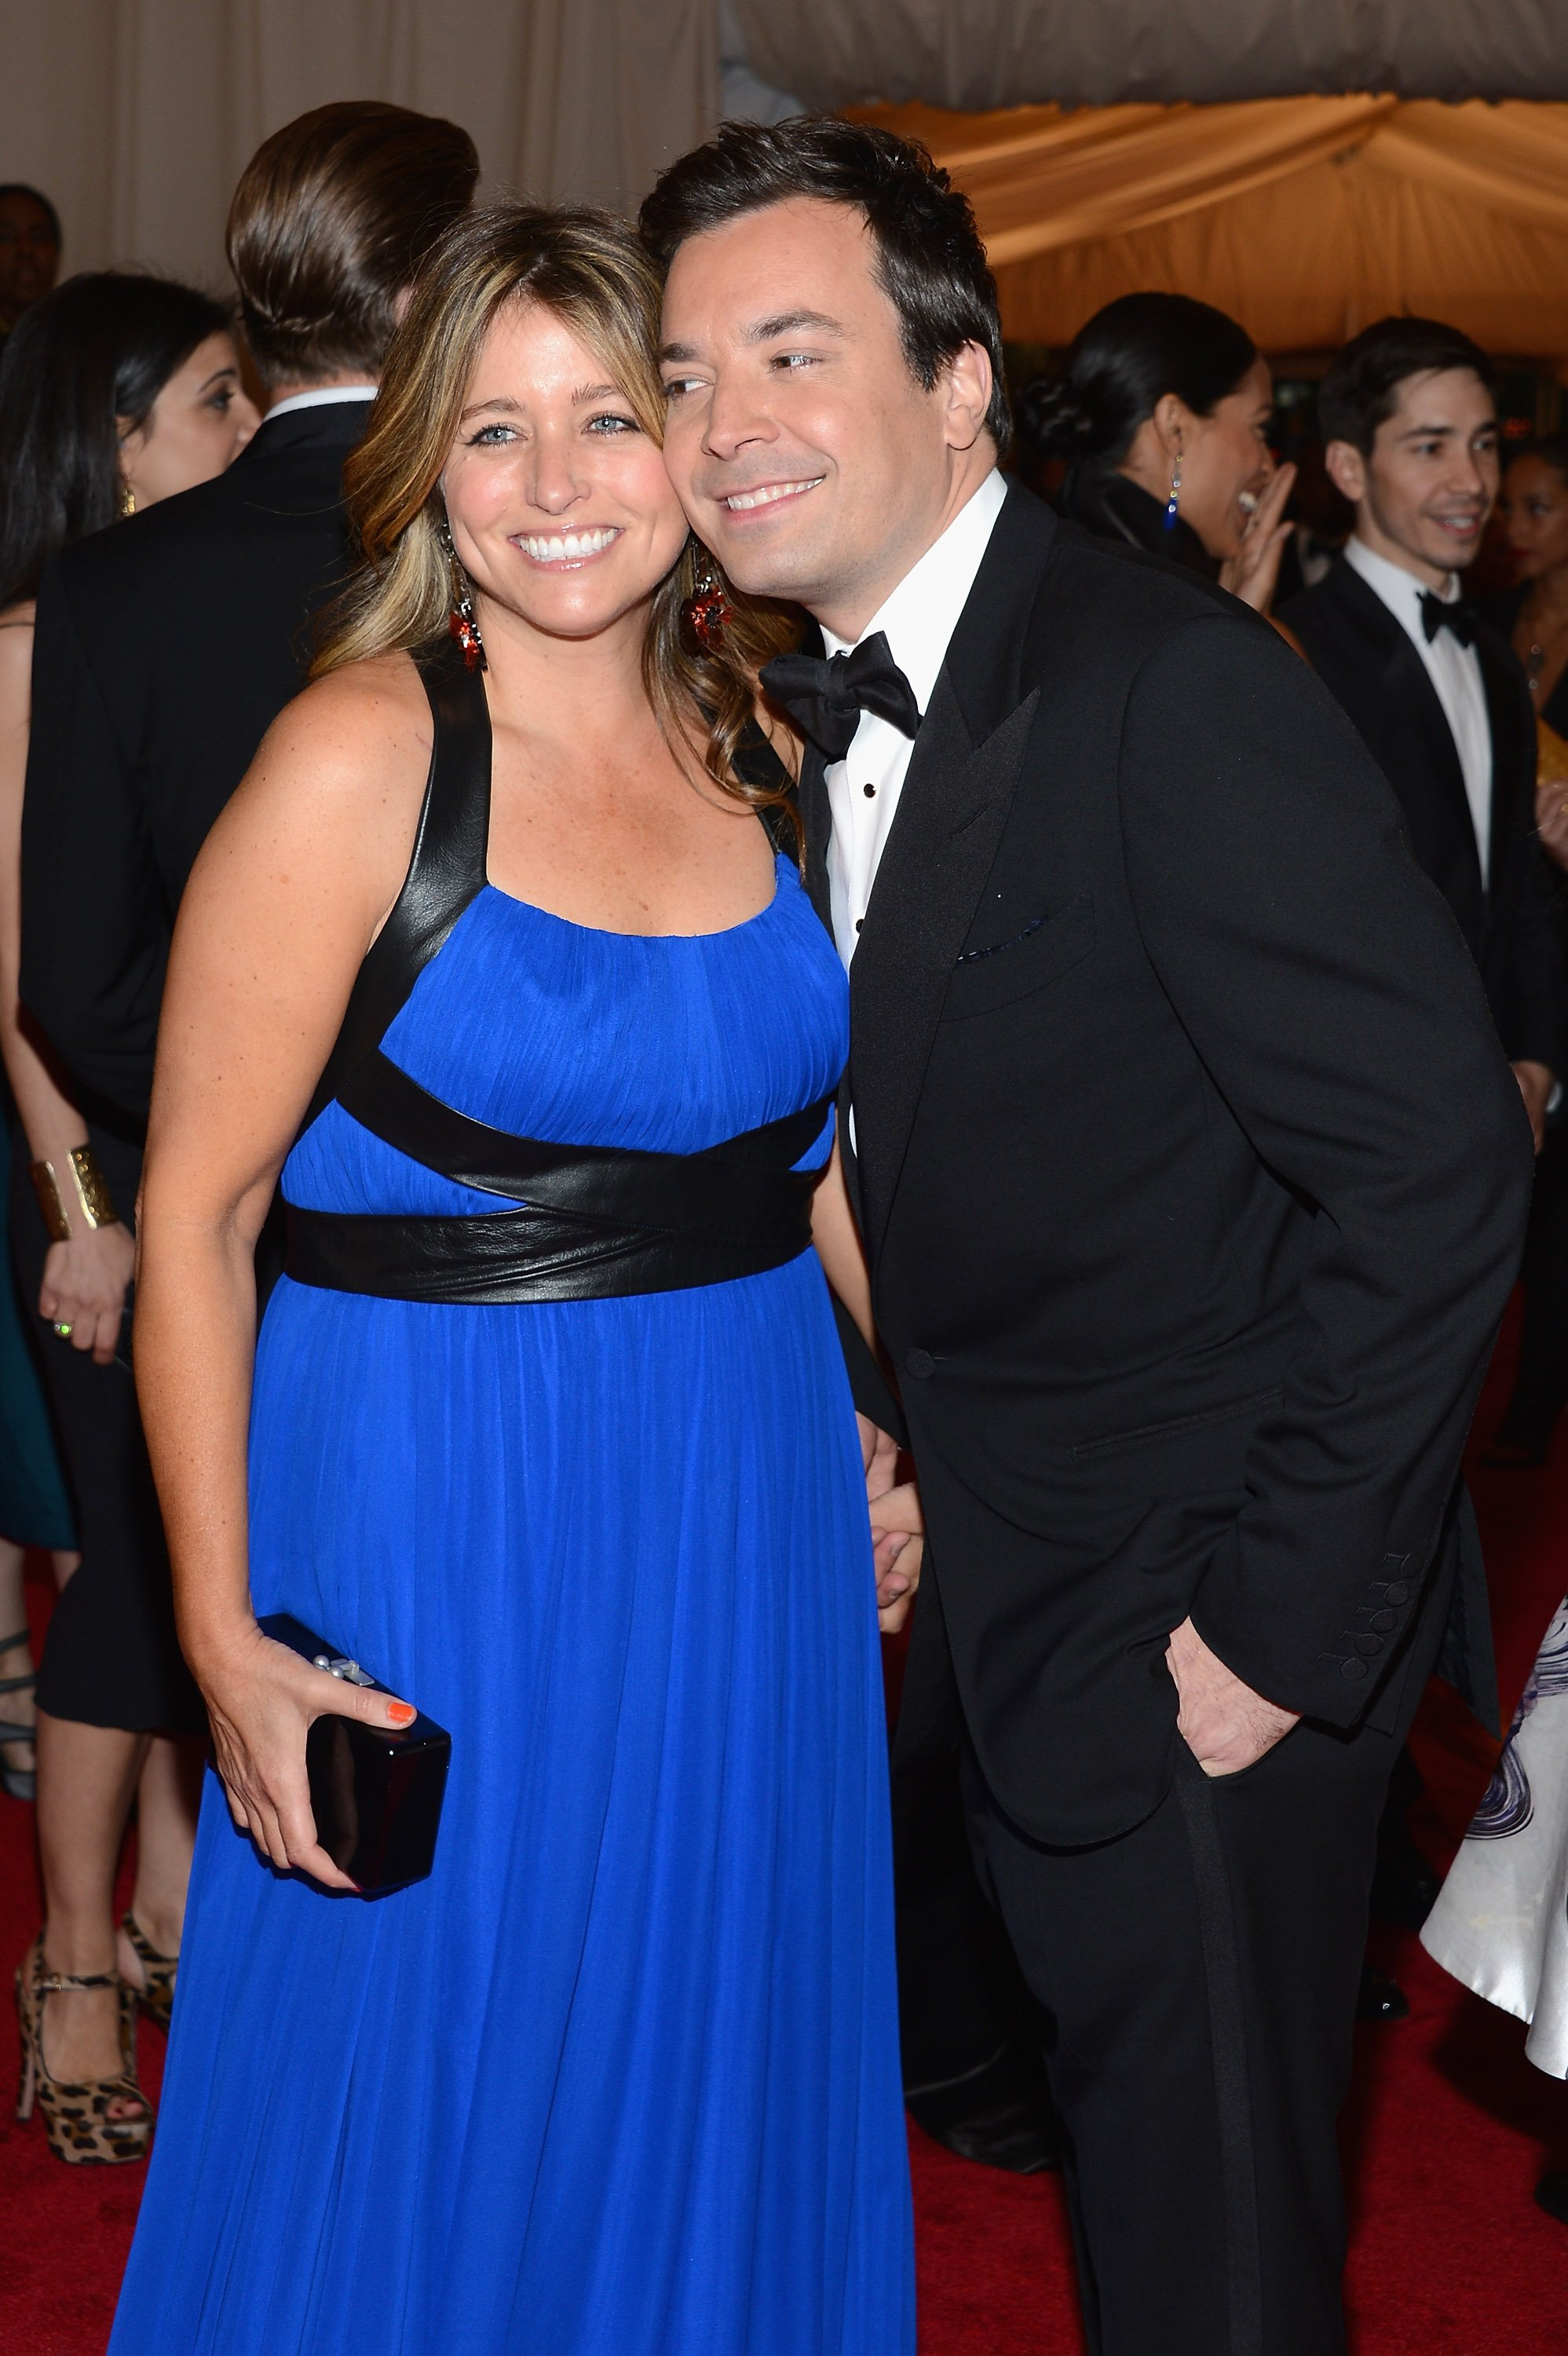 """Nancy Juvonen and Jimmy Fallon attend the """"Schiaparelli And Prada: Impossible Conversations"""" Costume Institute Gala at the Metropolitan Museum of Art on May 7, 2012 